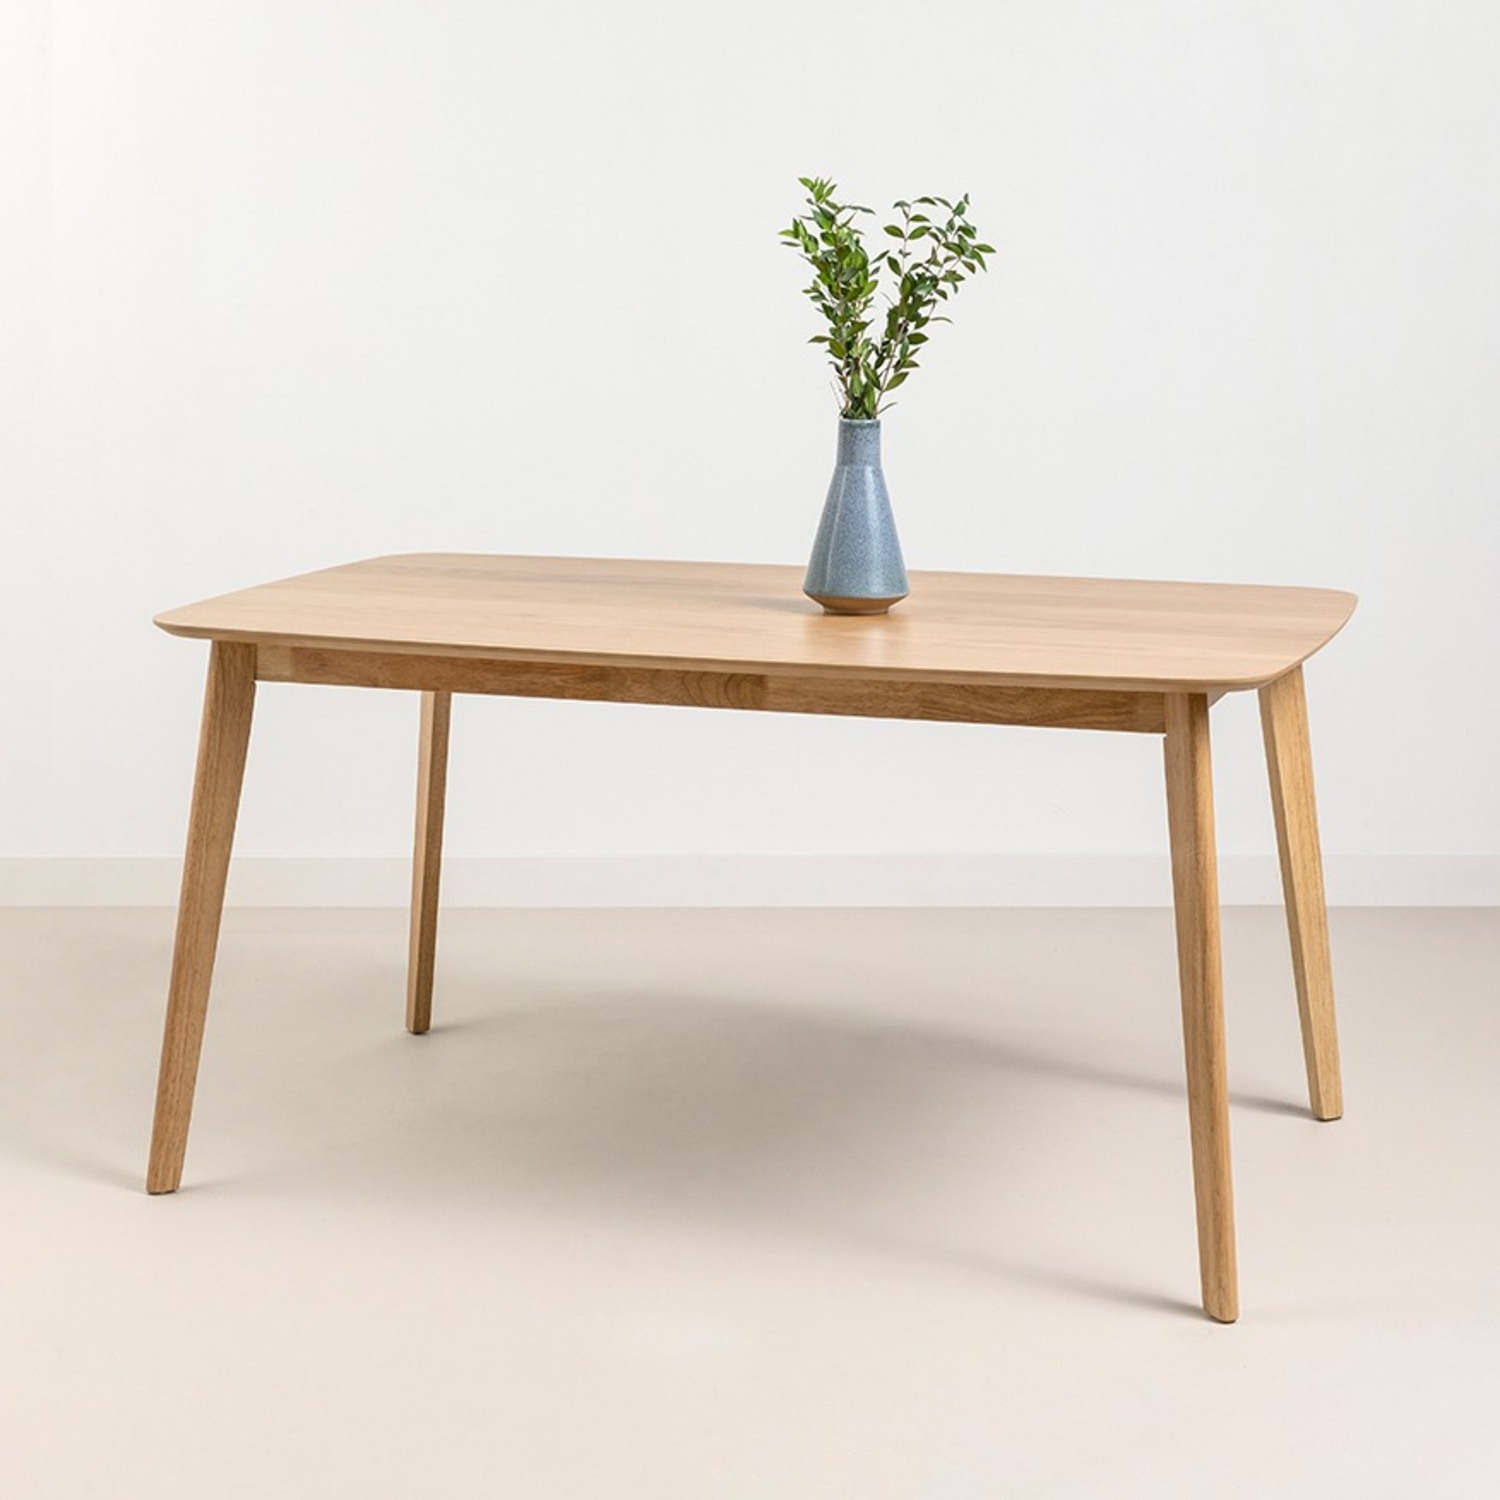 Feather Wren Dining Table - image-3